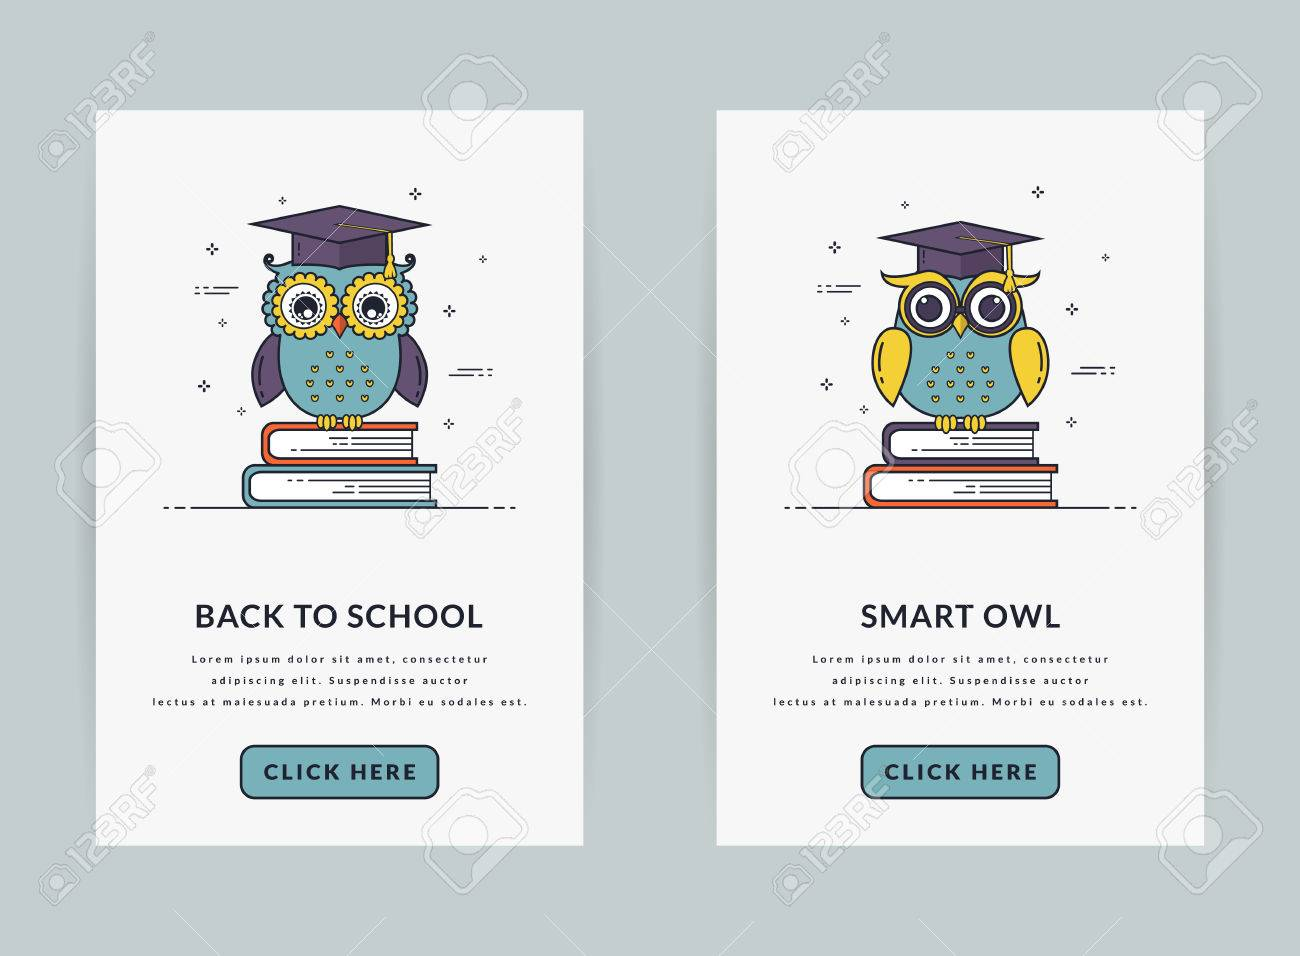 Mobile App Onboarding Screen Templates For Education And School Royalty Free Cliparts Vectors And Stock Illustration Image 83563712